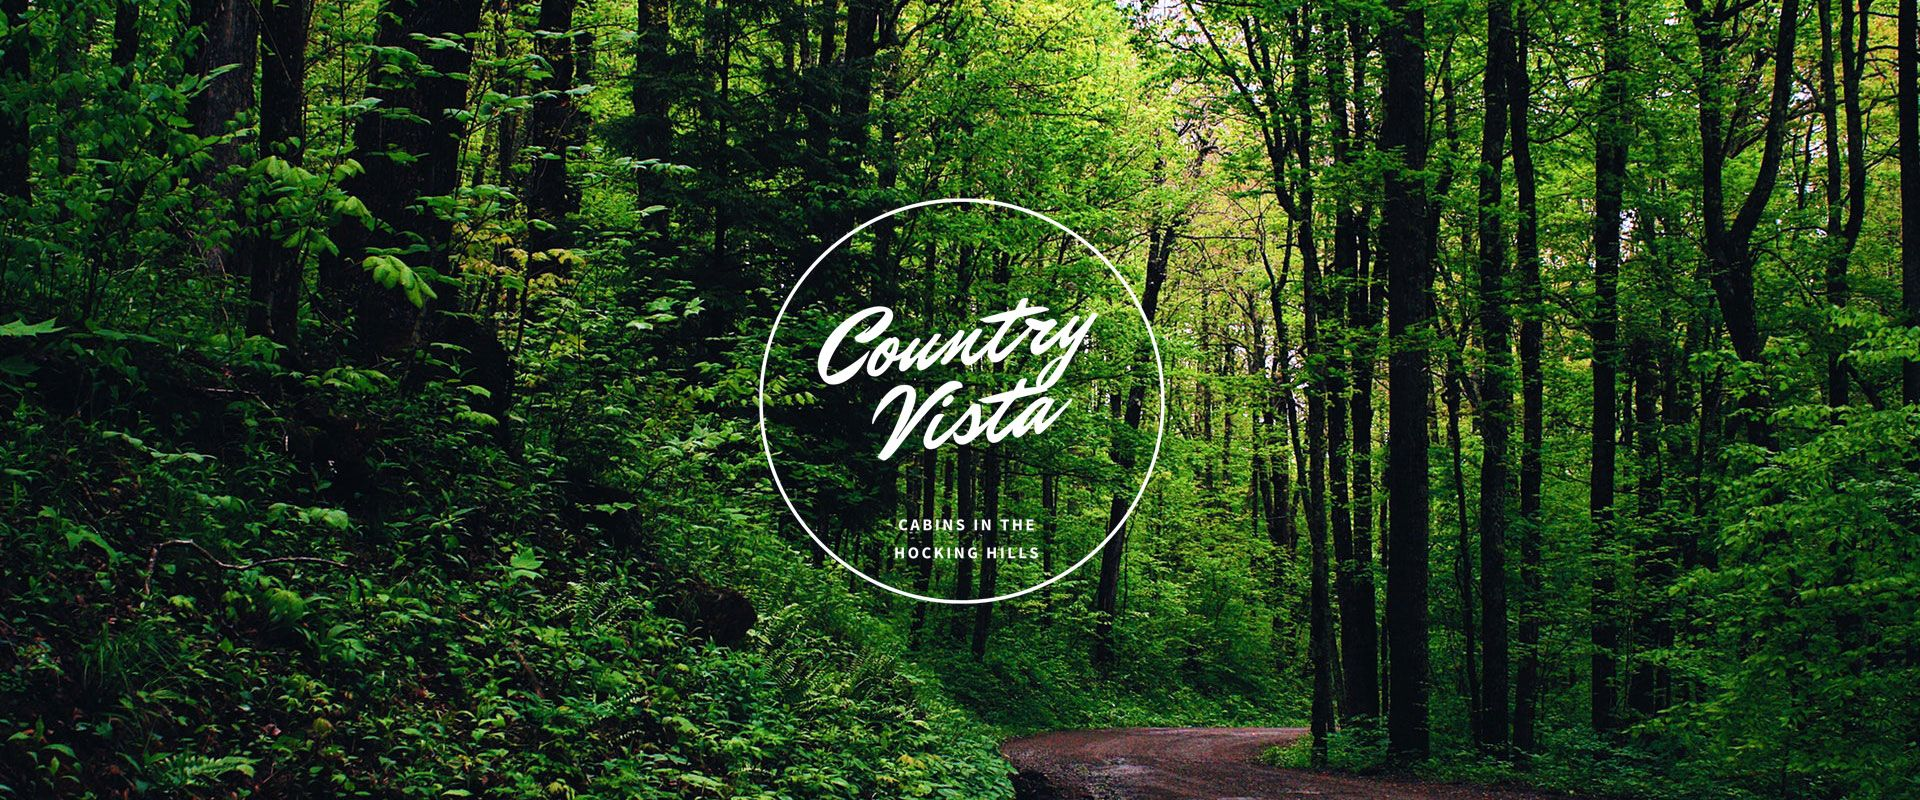 Cabin at country vista banner